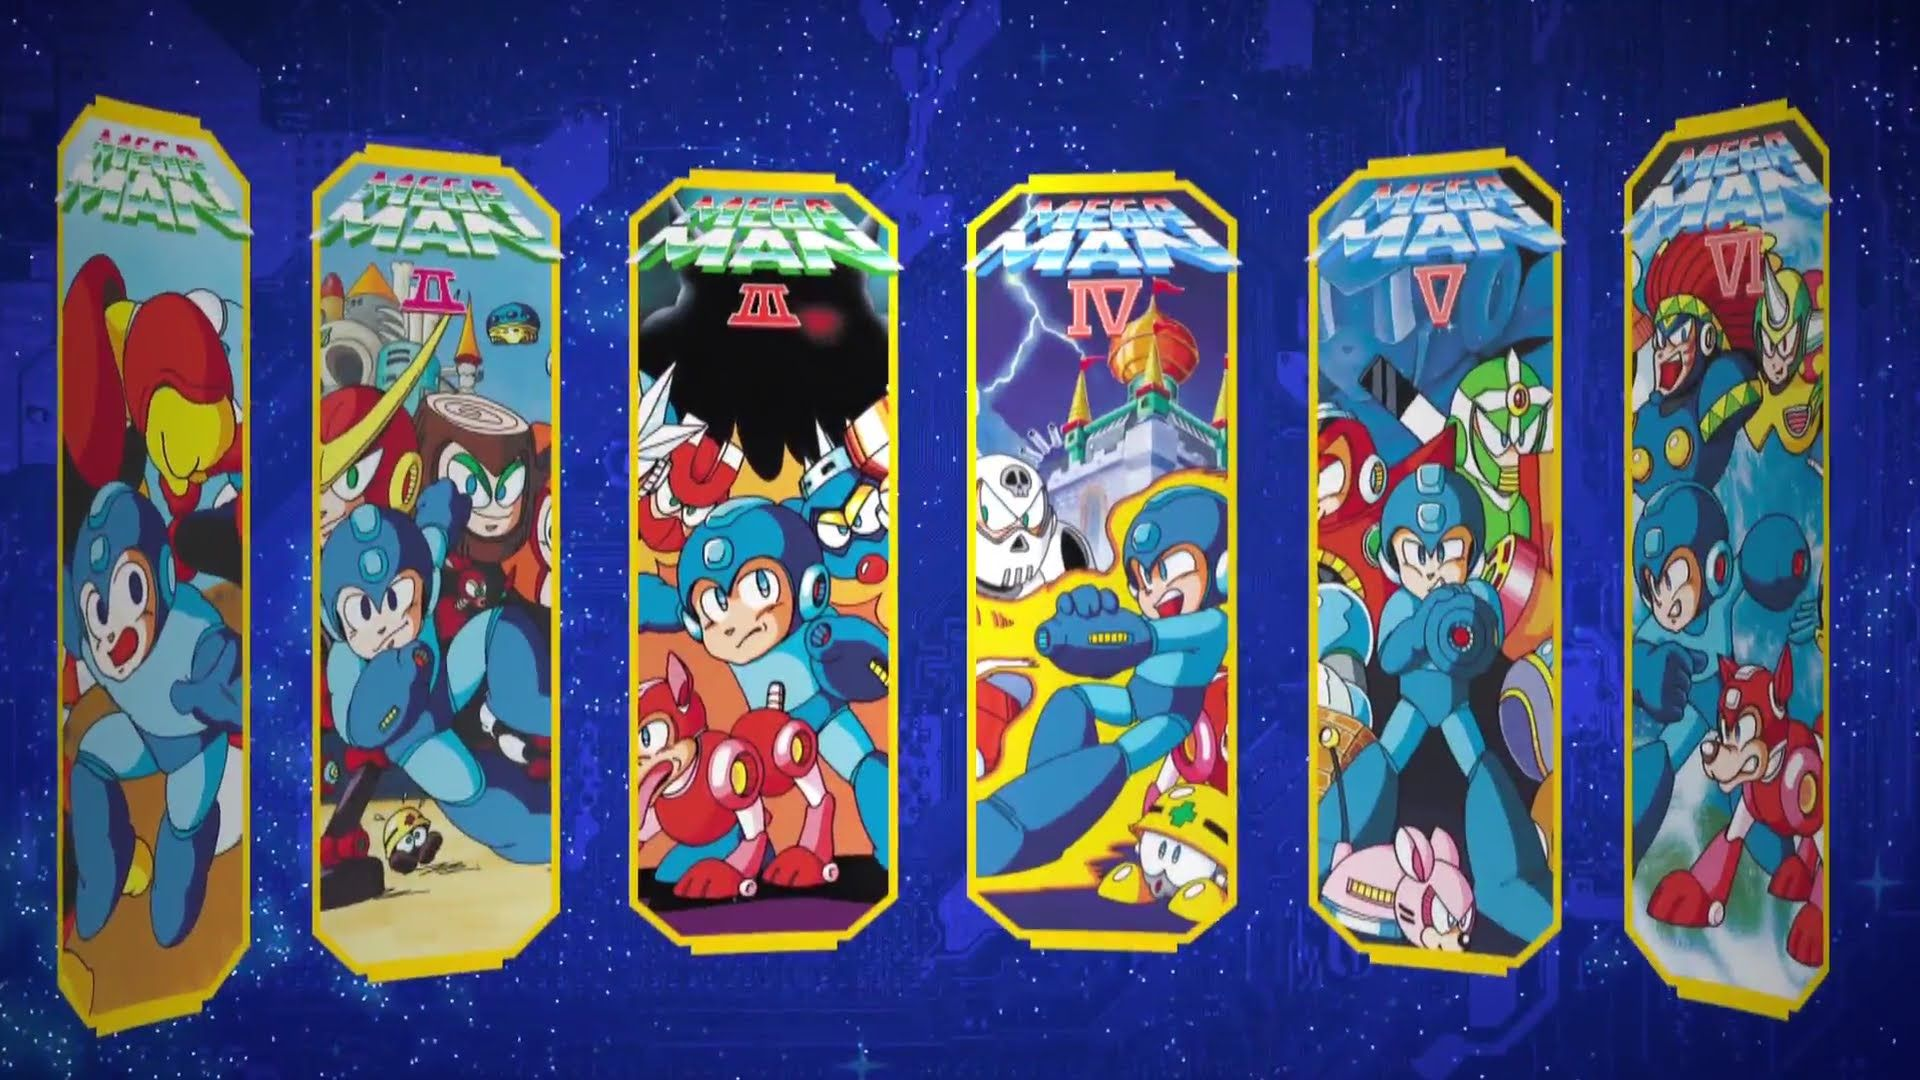 View, download, comment, and rate this 1920x1080 Mega Man Legacy